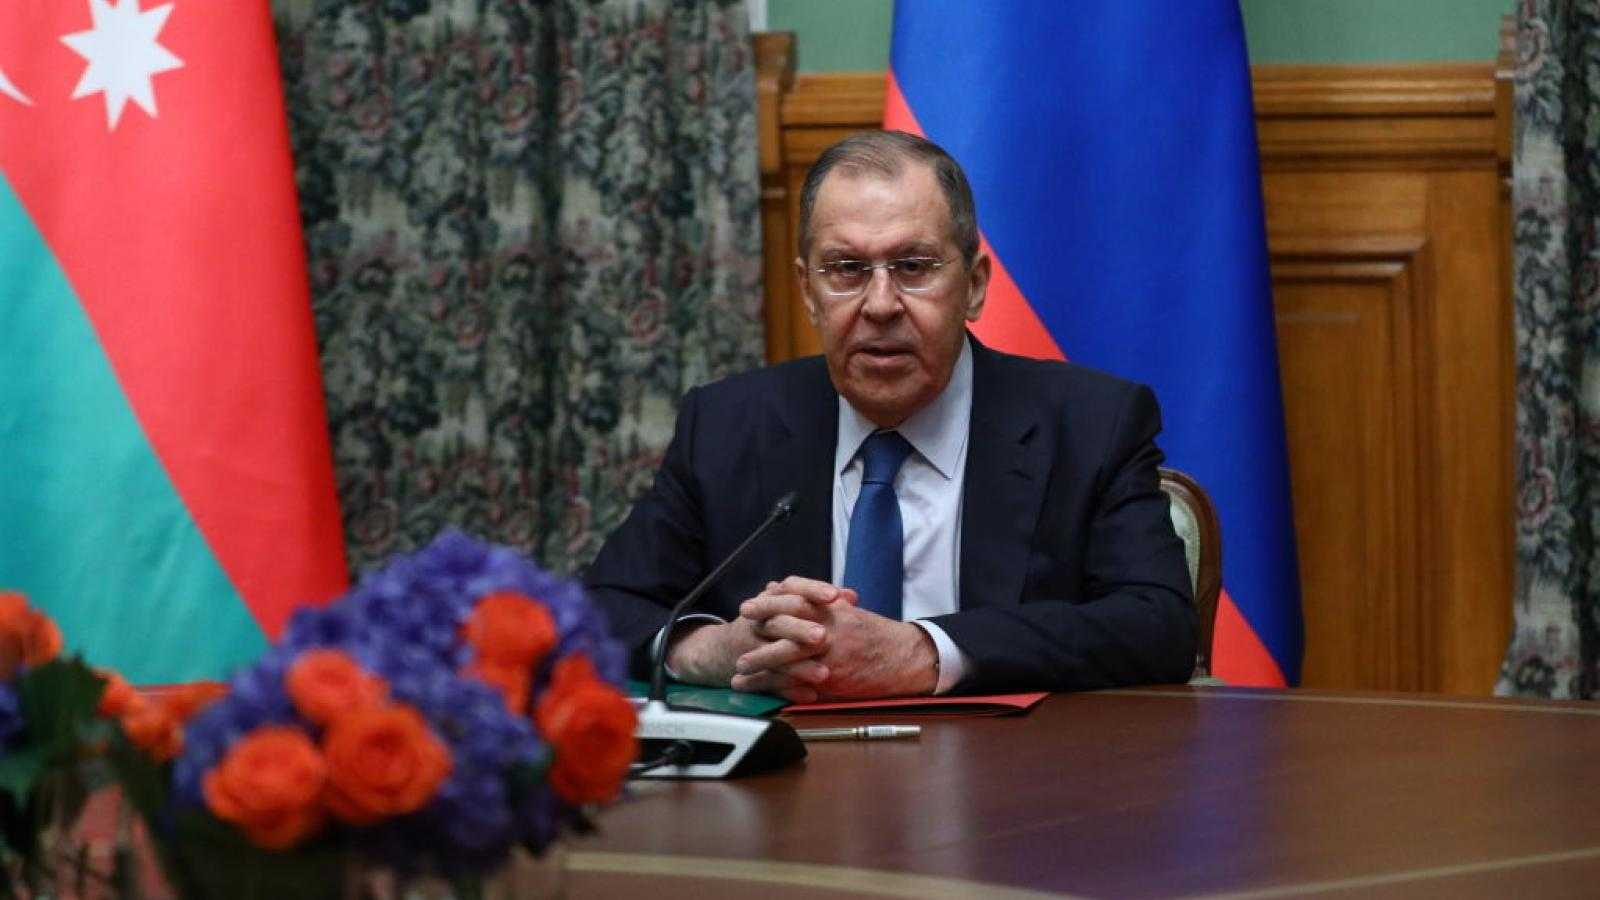 Russian Foreign Minister Sergey Lavrov meets Minister of Foreign Affairs of Azerbaijan Jeyhun Bayramov and Minister of Foreign Affairs of Armenia Zohrab Mnatsakanyan in Moscow, Russia